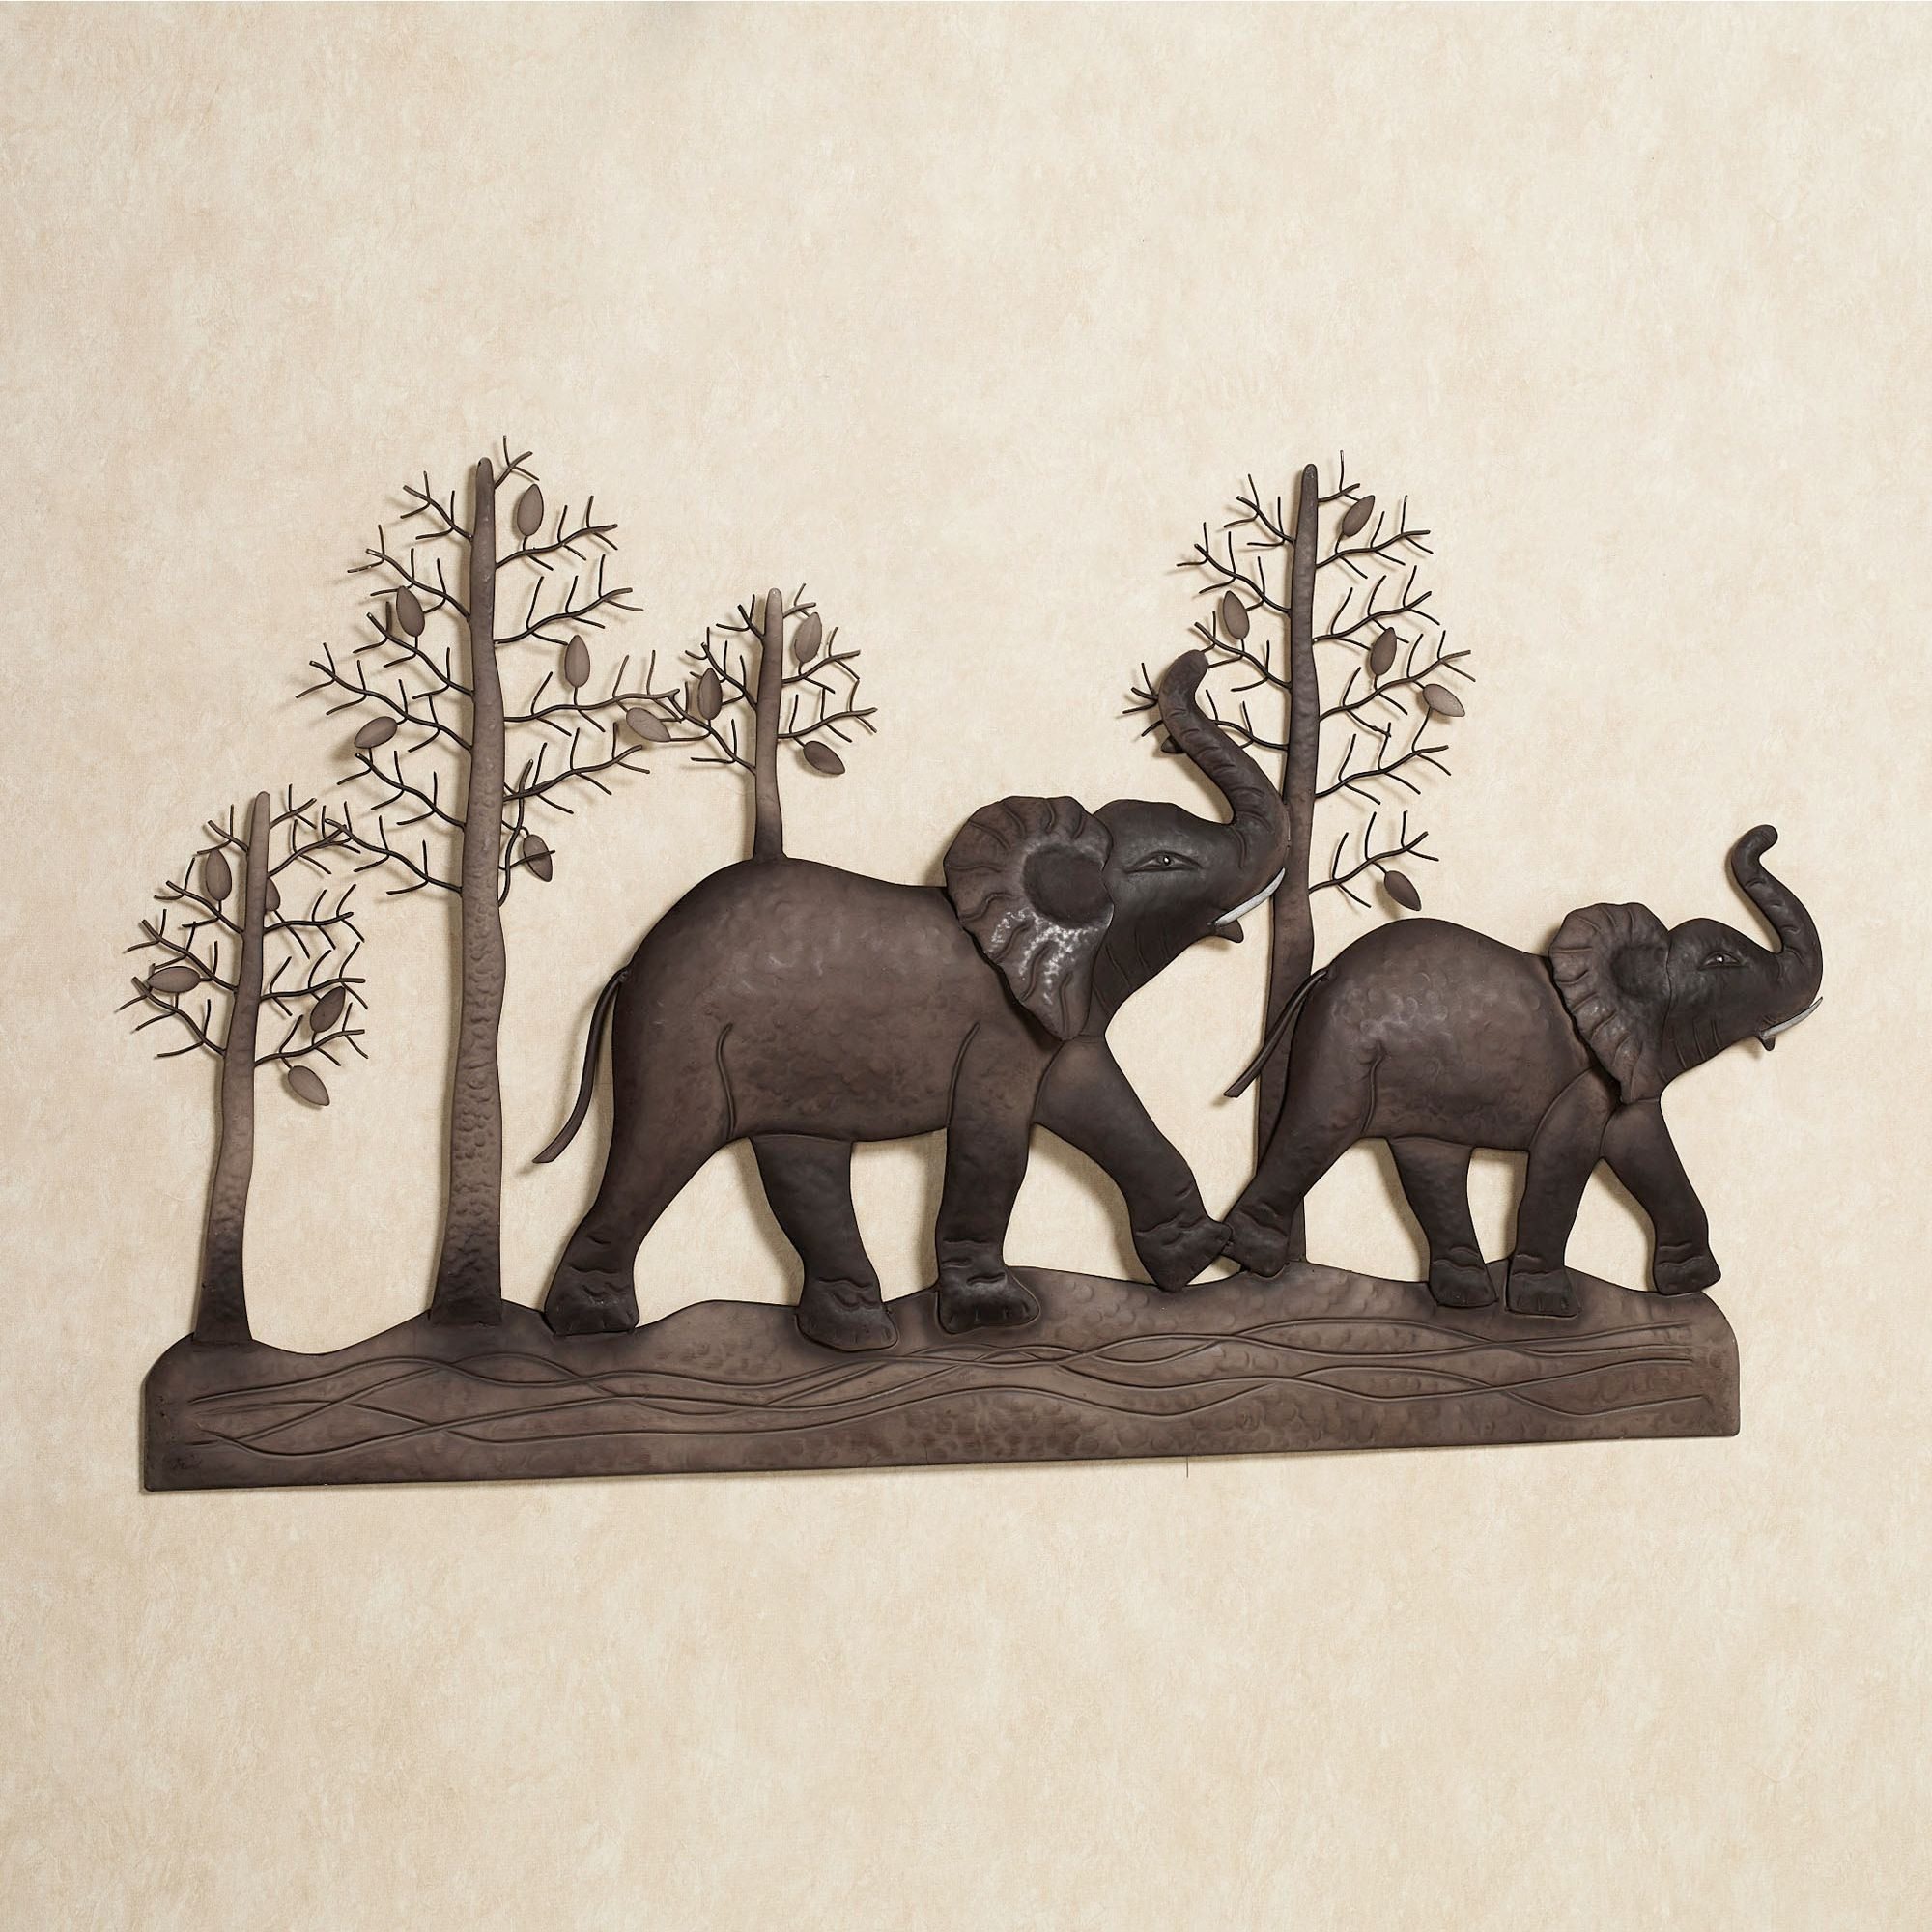 Best ideas about Elephant Wall Art . Save or Pin Elephant Metal Wall Art Now.